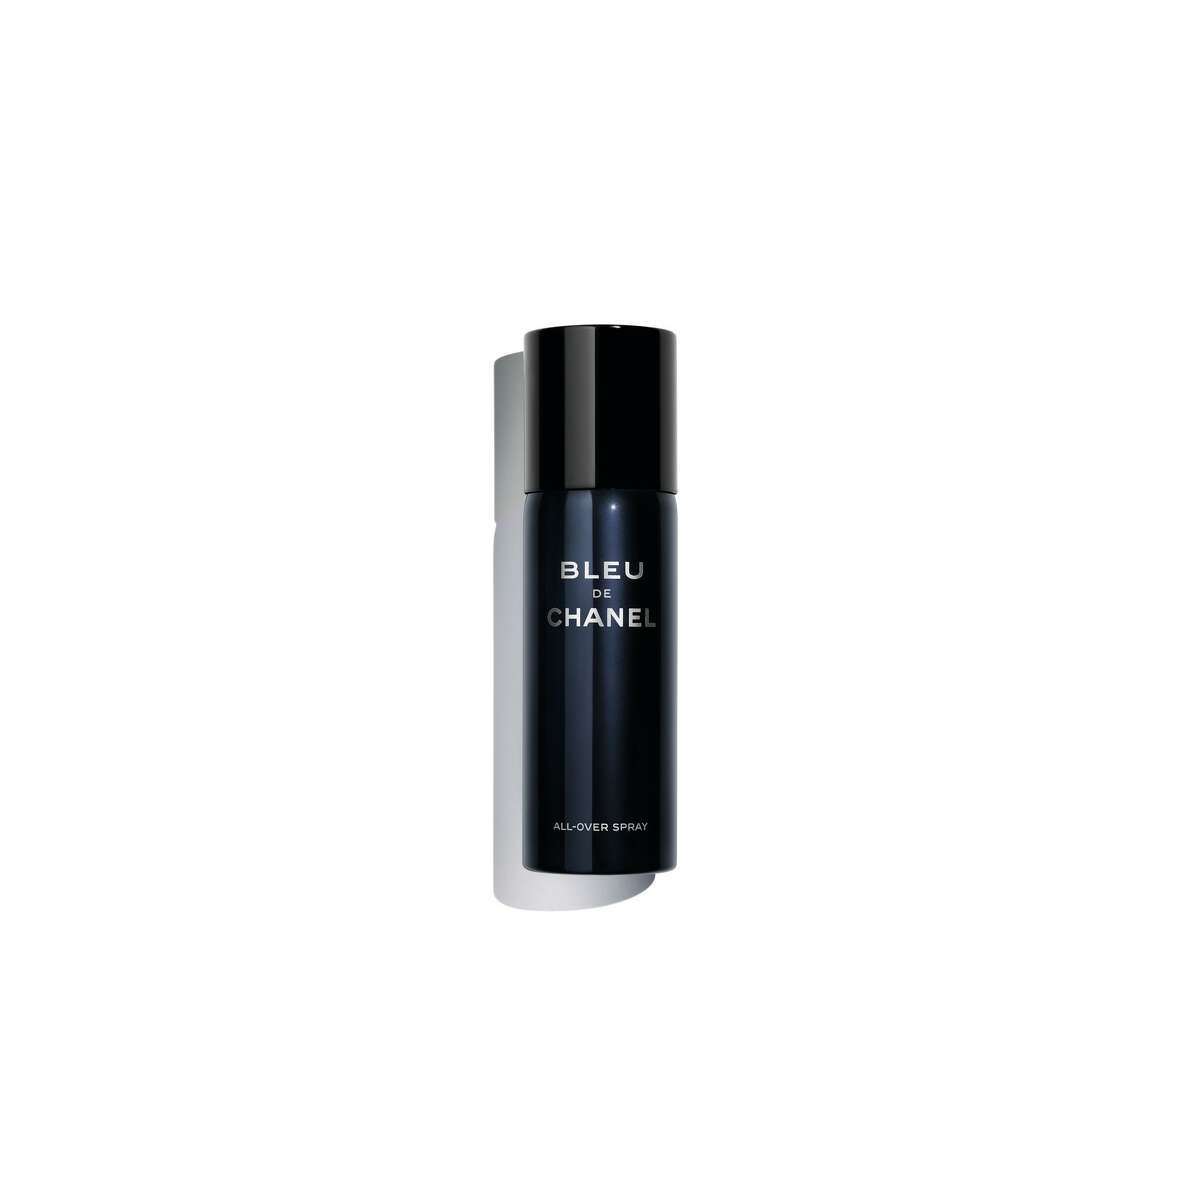 Bleu de Chanel, a cedar and sandalwood men's fragrance, is now available in a new all-over spray.